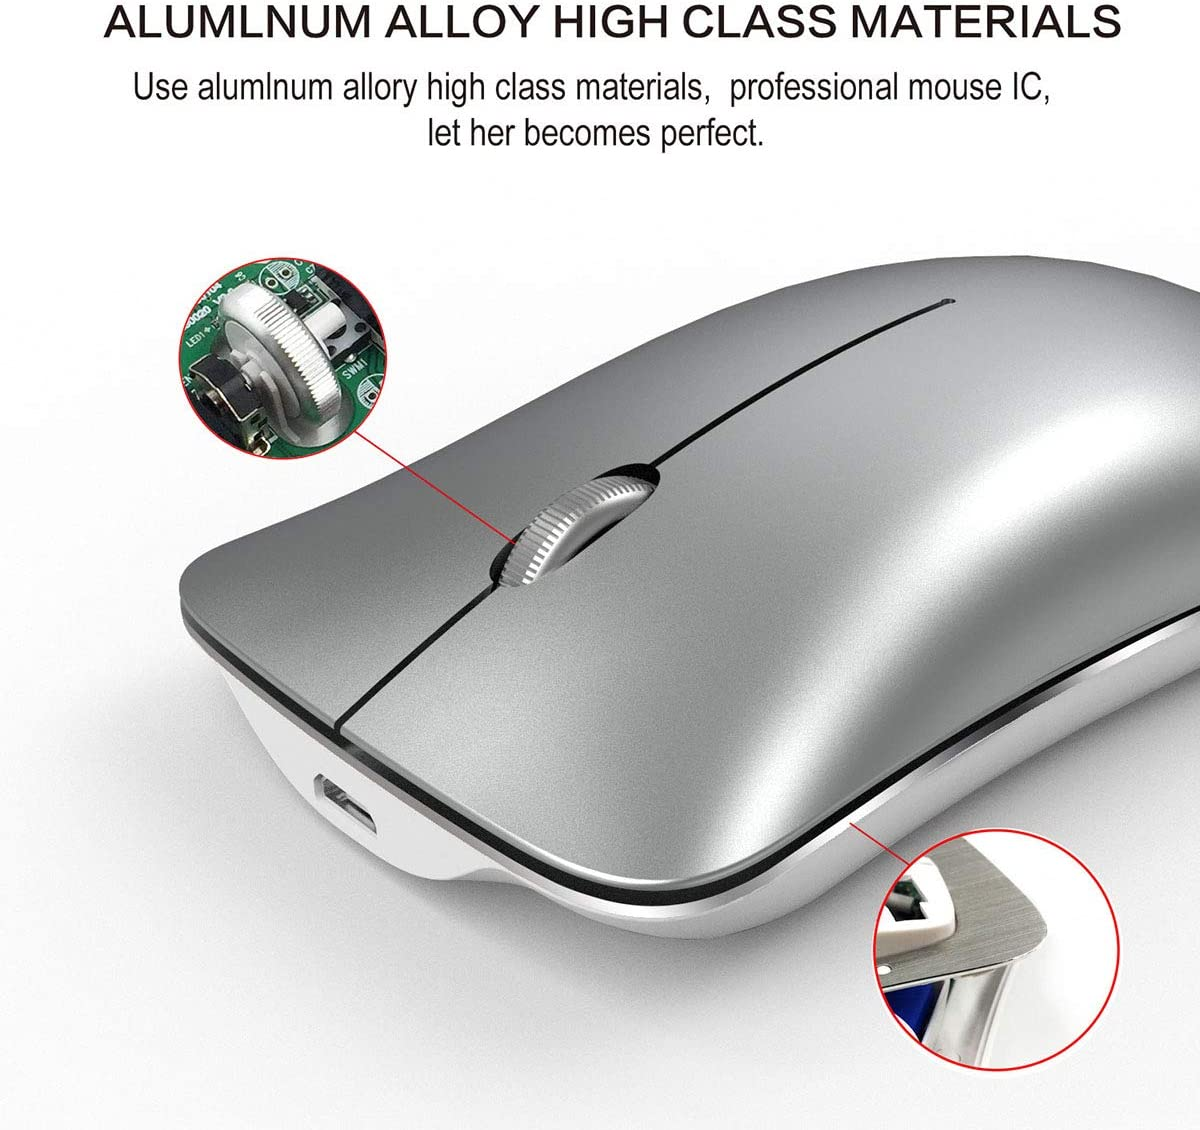 Slim Silent Click Rechargable 2.4G Cordless Mice 1600 DPI USB Optical Office Mouse for Notebook PC Laptop Computer MacBook,Silver WANGJIANGLI Wireless Mouse